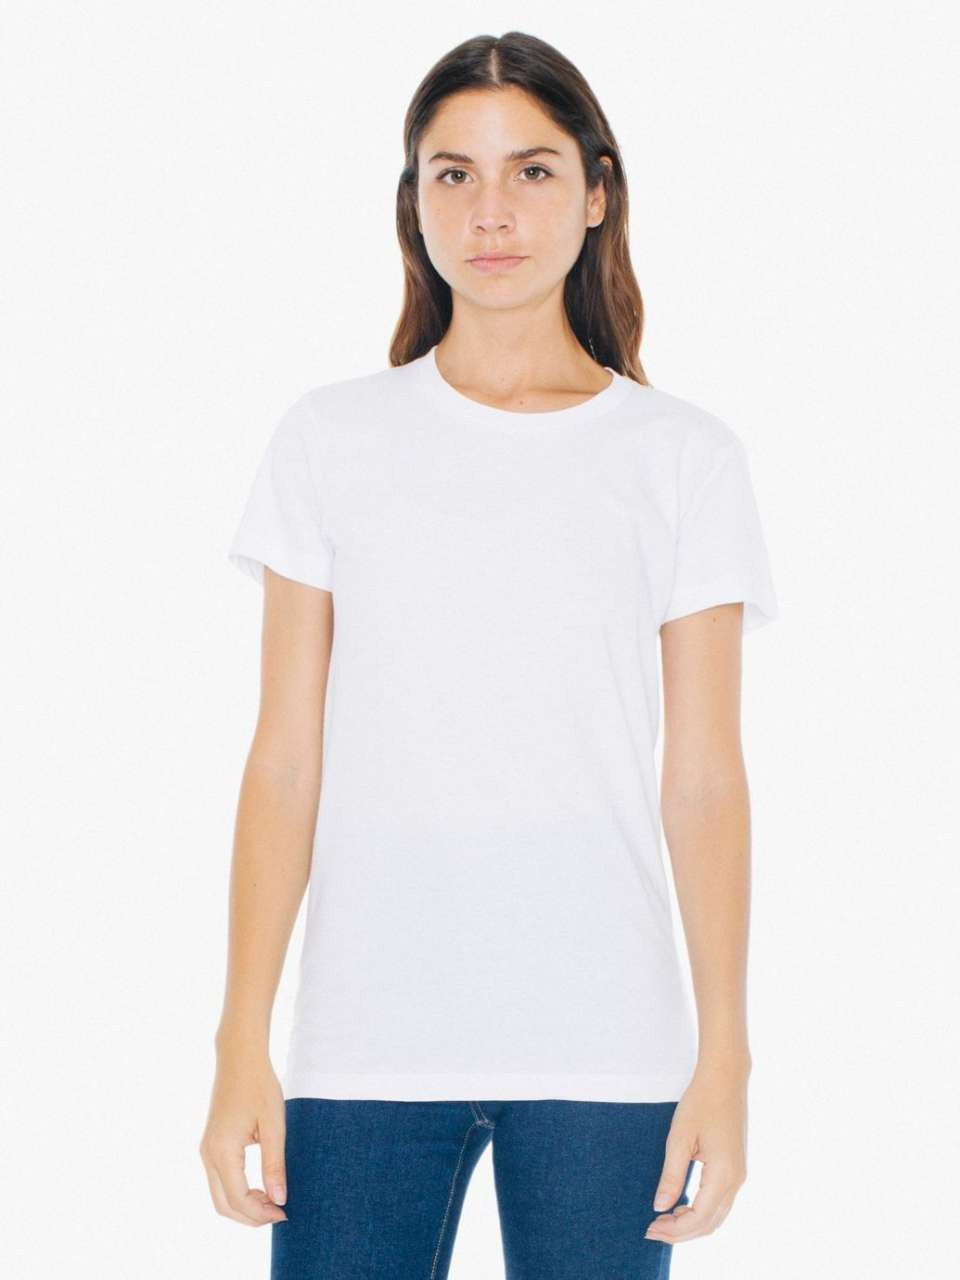 American Apparel WOMEN S FINE JERSEY SHORT SLEEVE T-SHIRT 6c0c9ad224